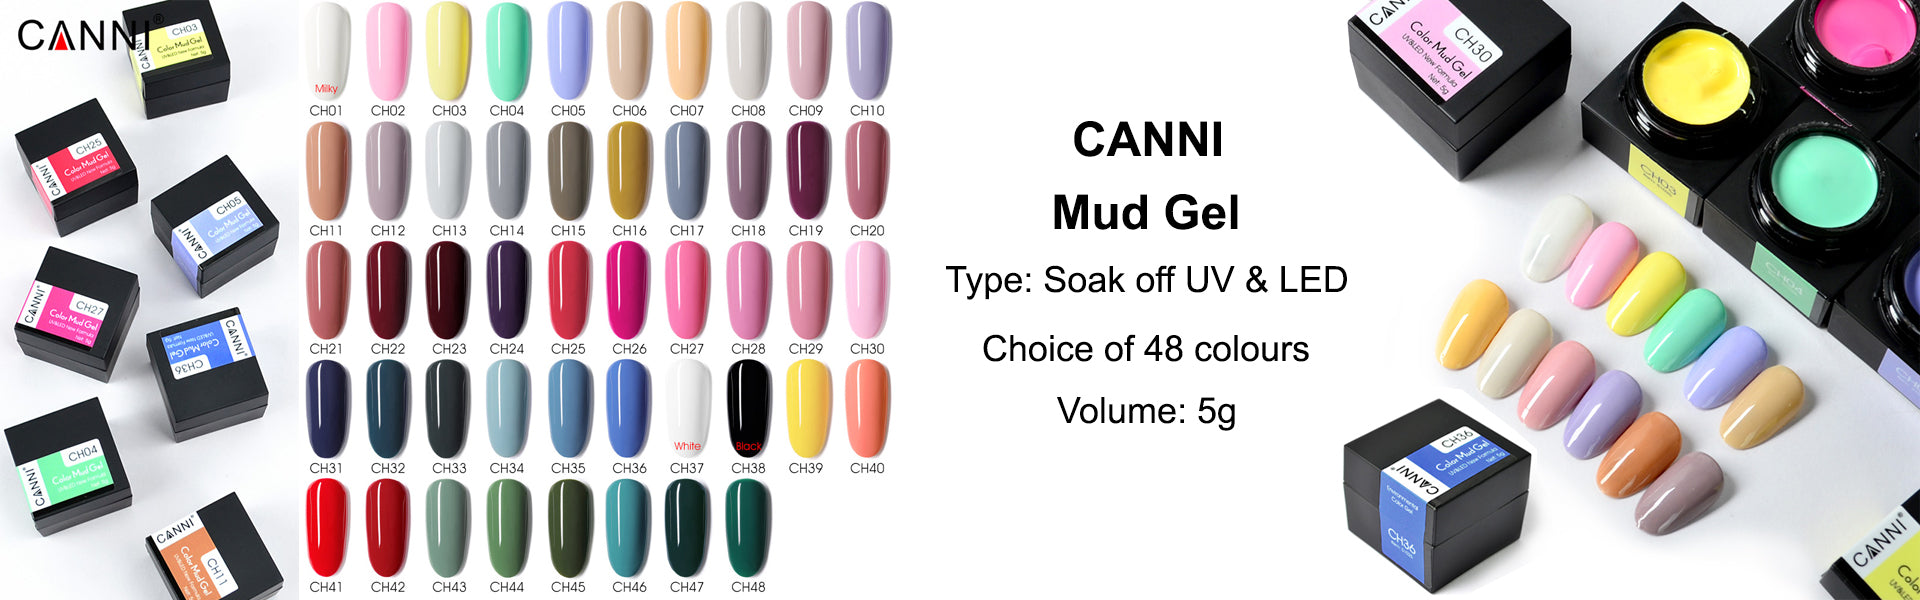 Soak Off UV LED Mud Gel by CANNI